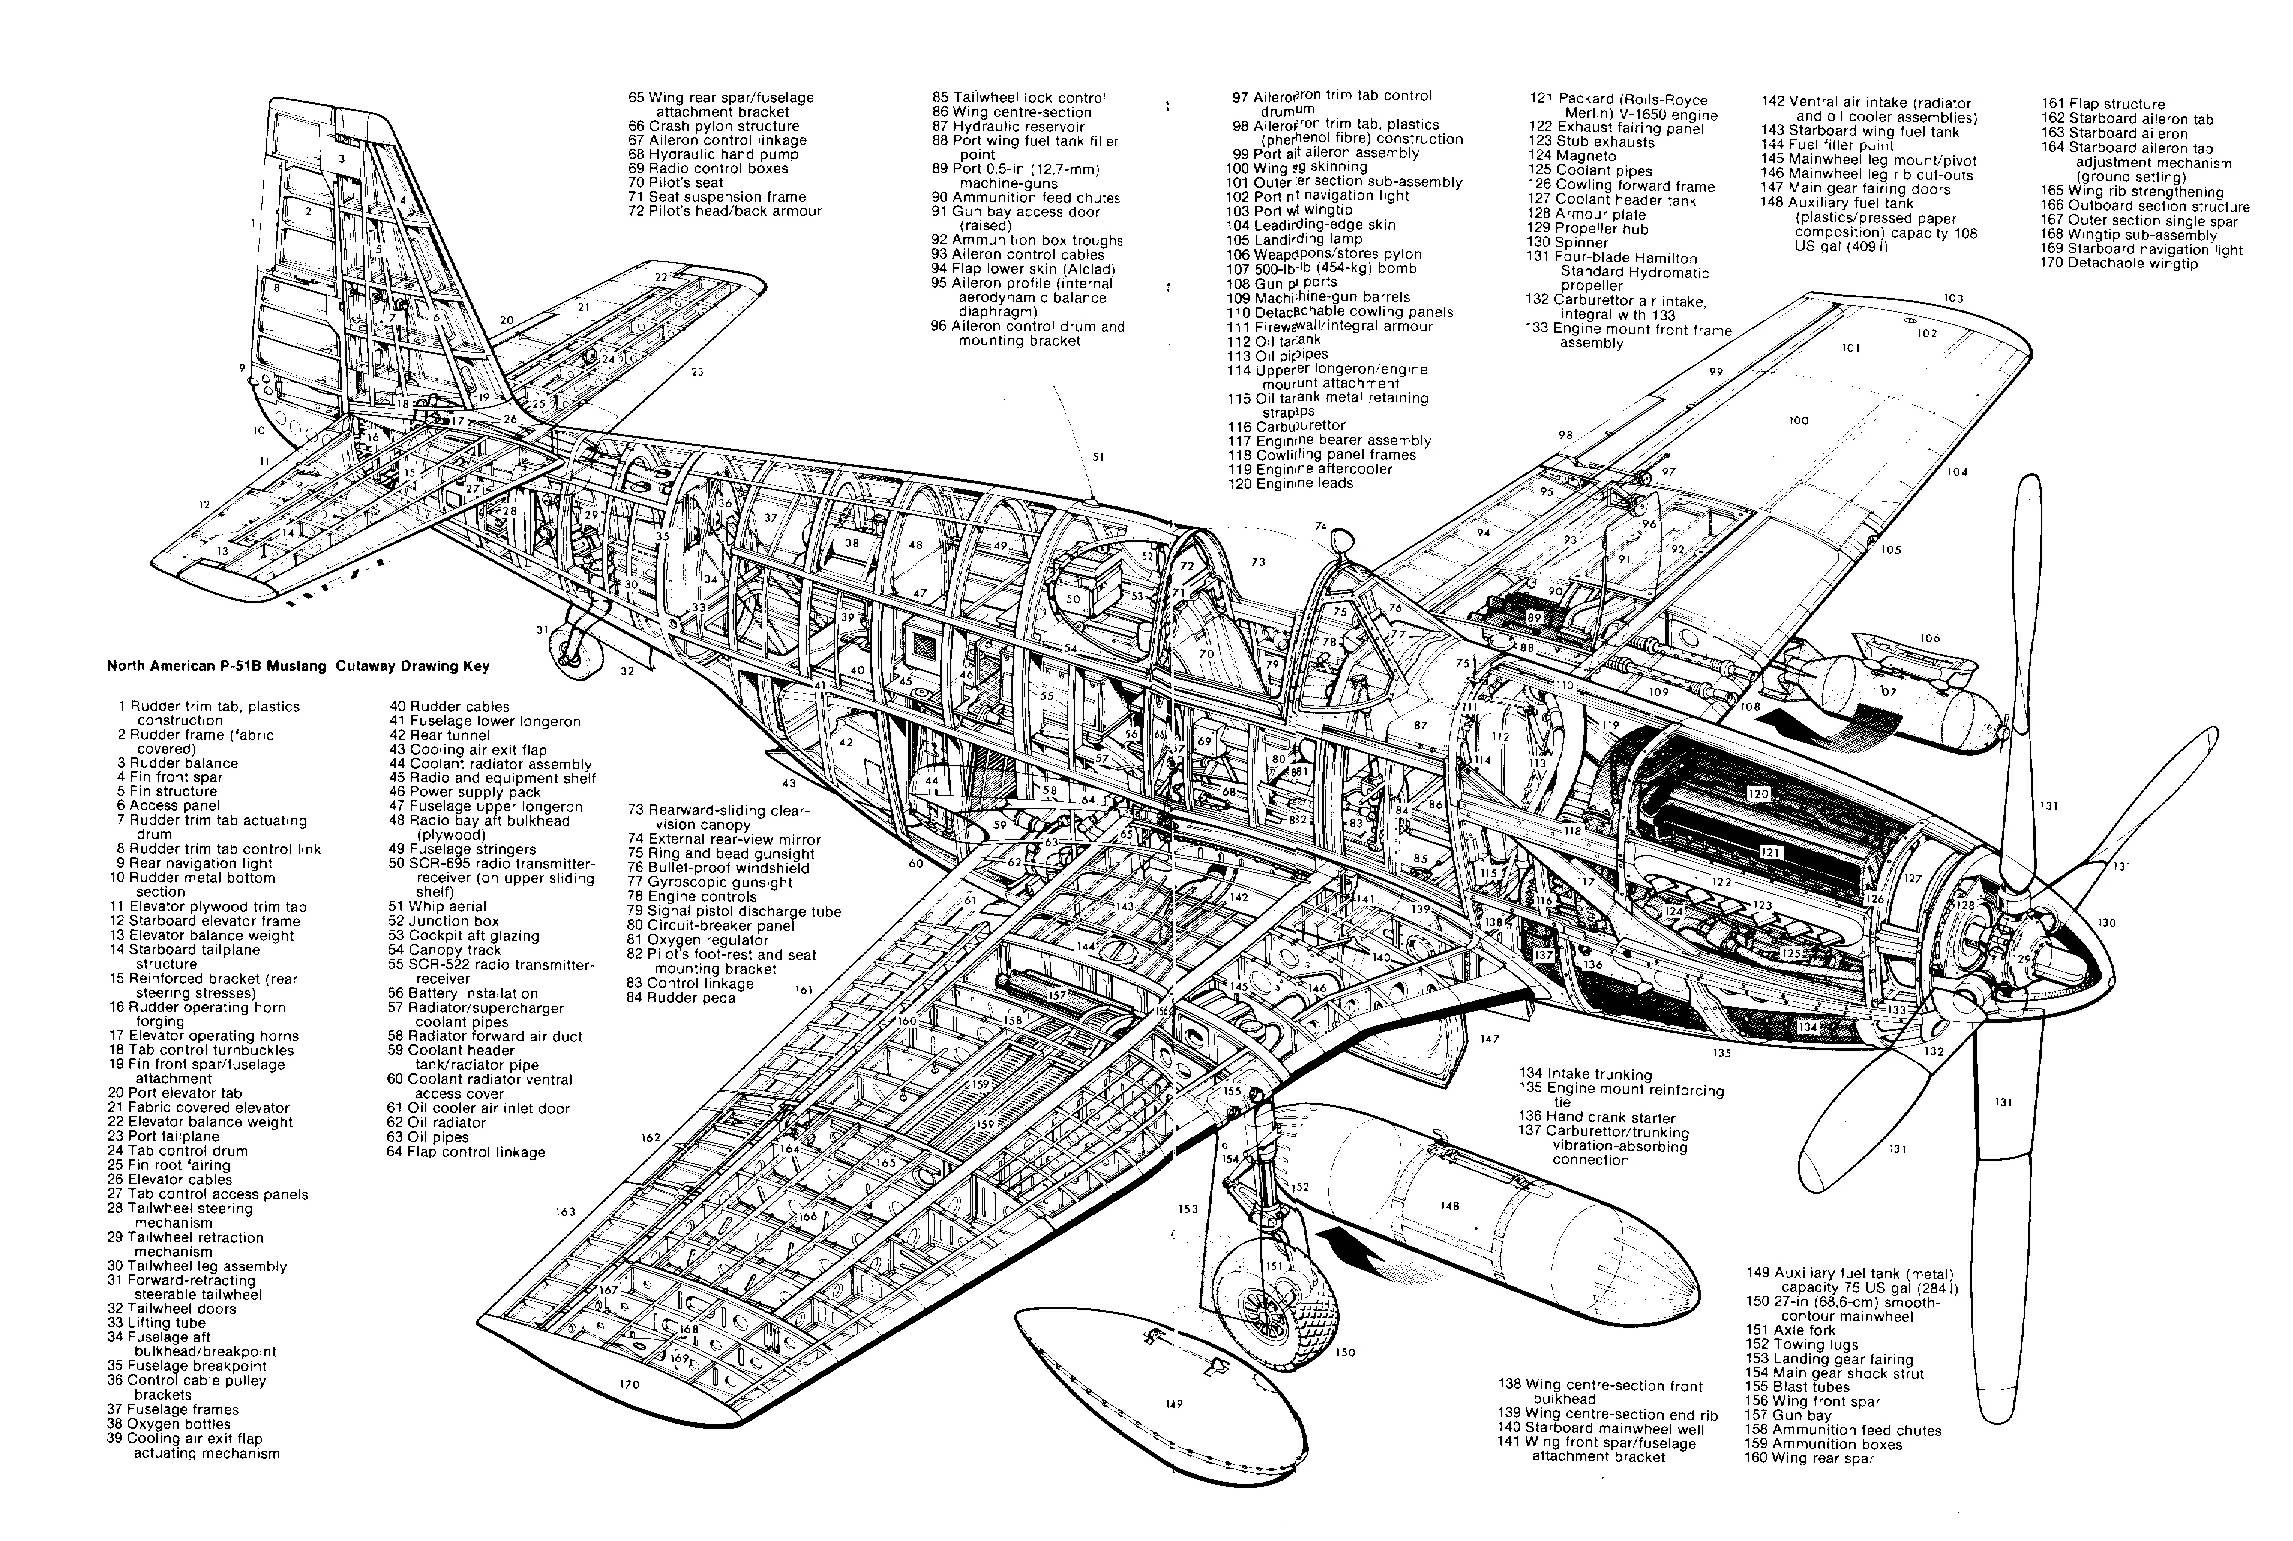 P 51 Mustang Blueprints Pictures To Pin